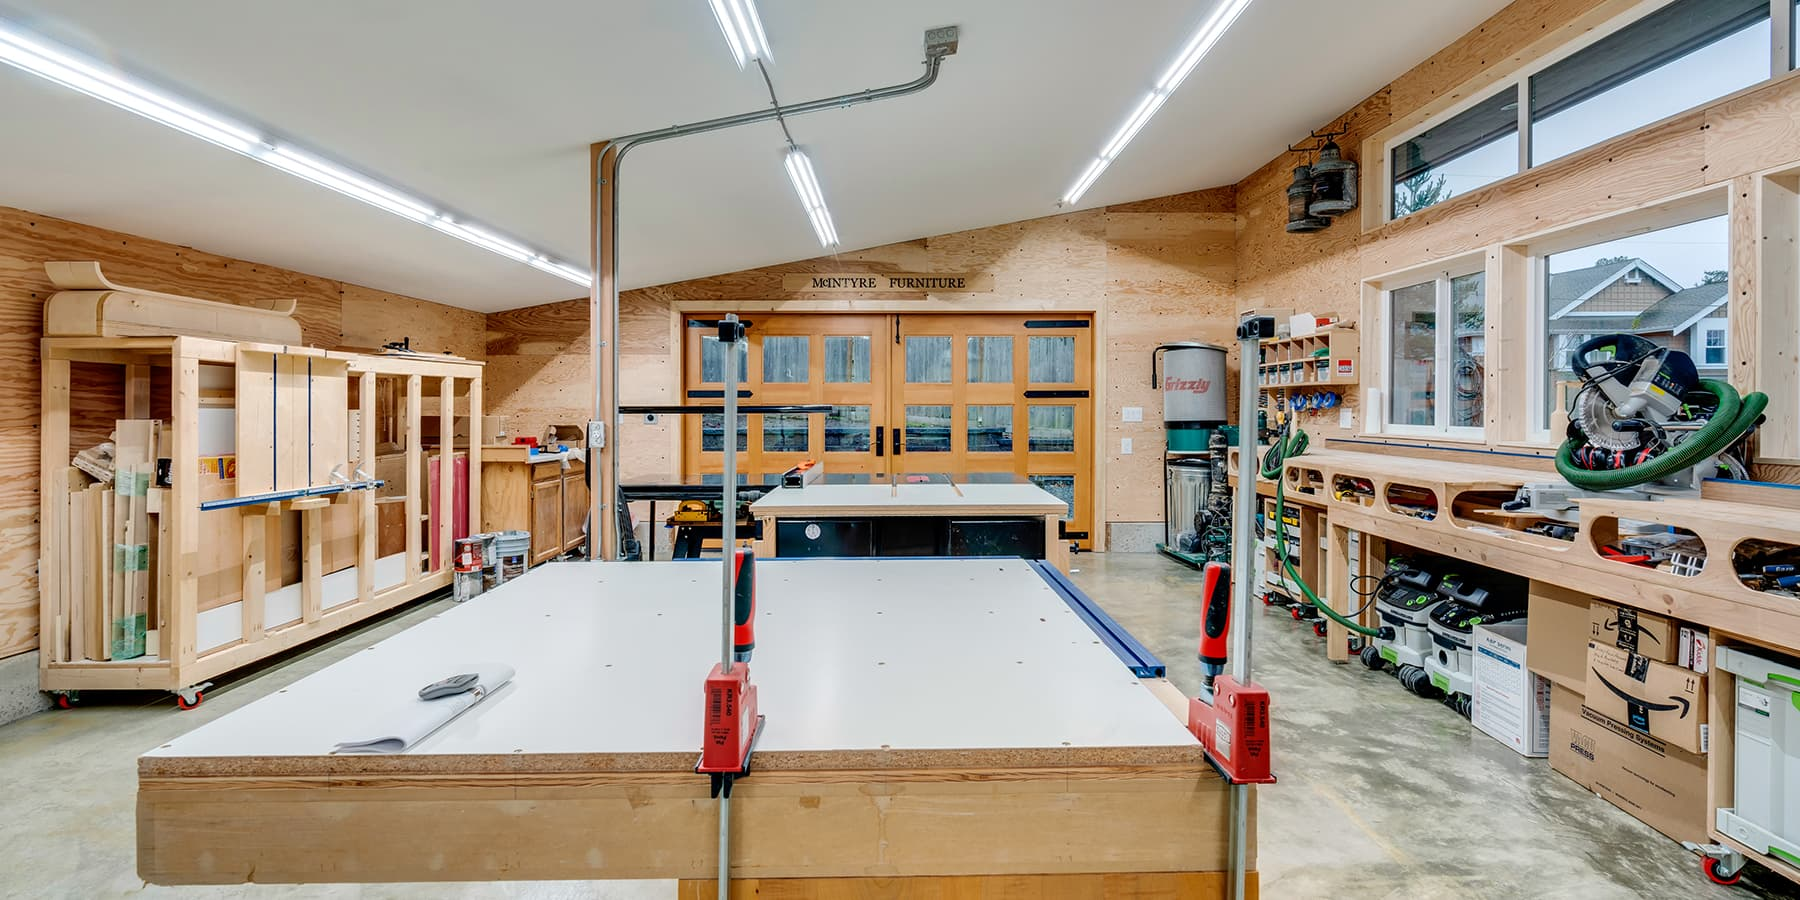 McIntyre Furniture woodshop interior view featuring the shop's new bright and clean look with new appliances and machinery.